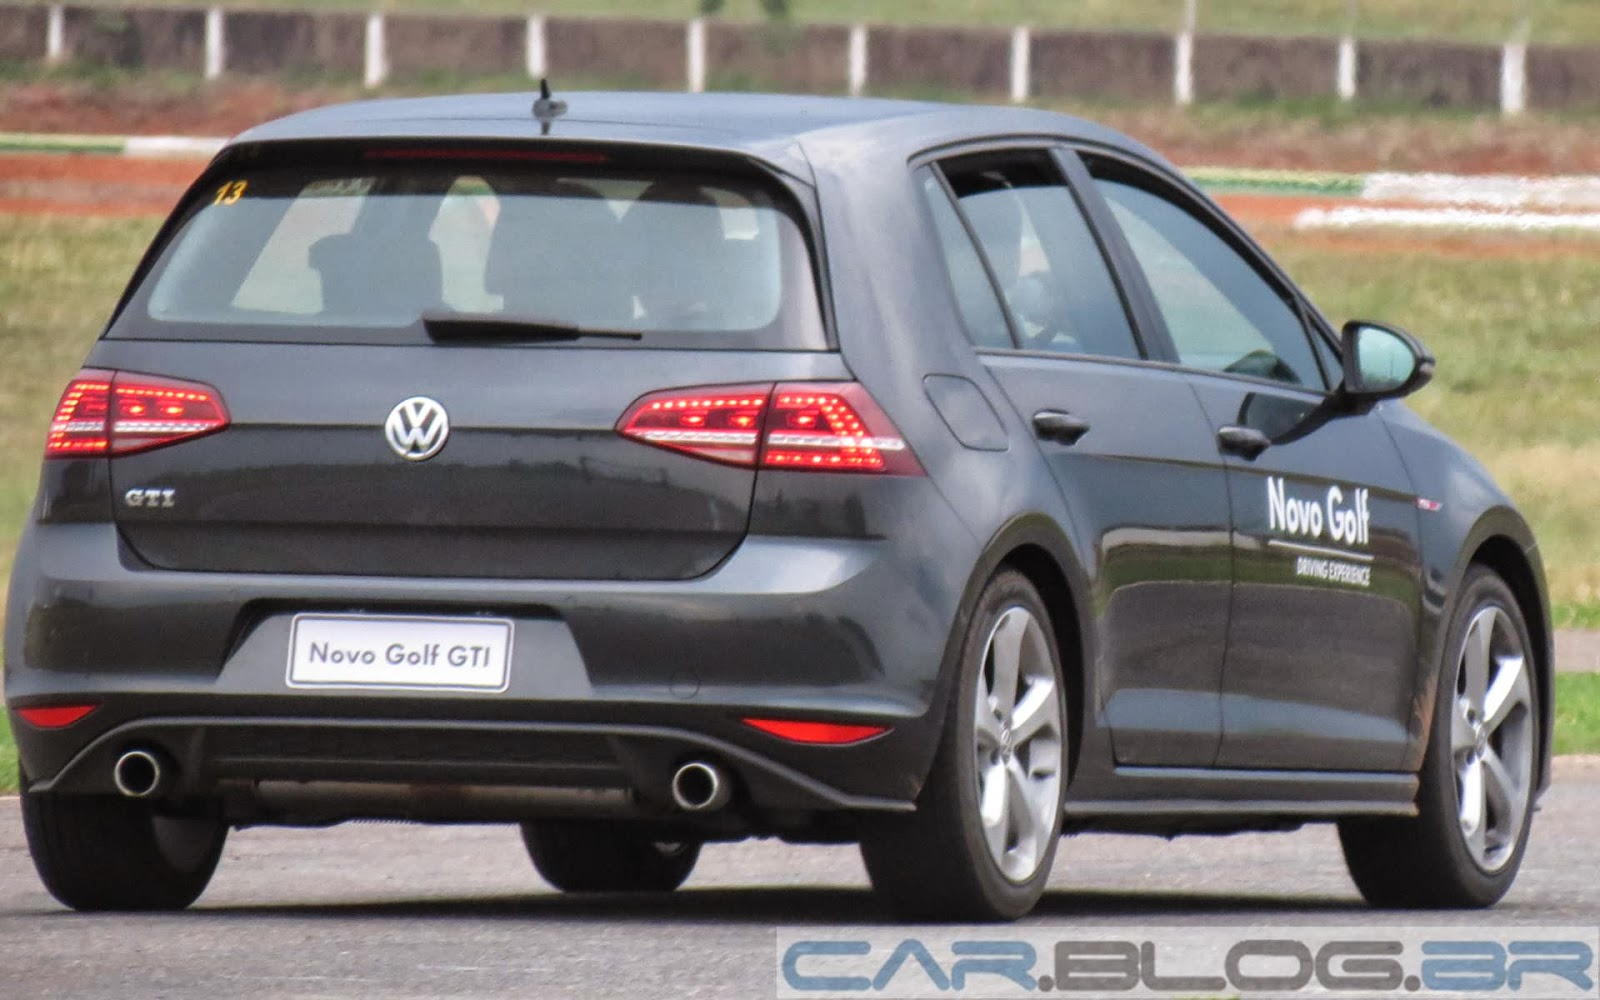 Novo Golf GTI - Fullpower Lap